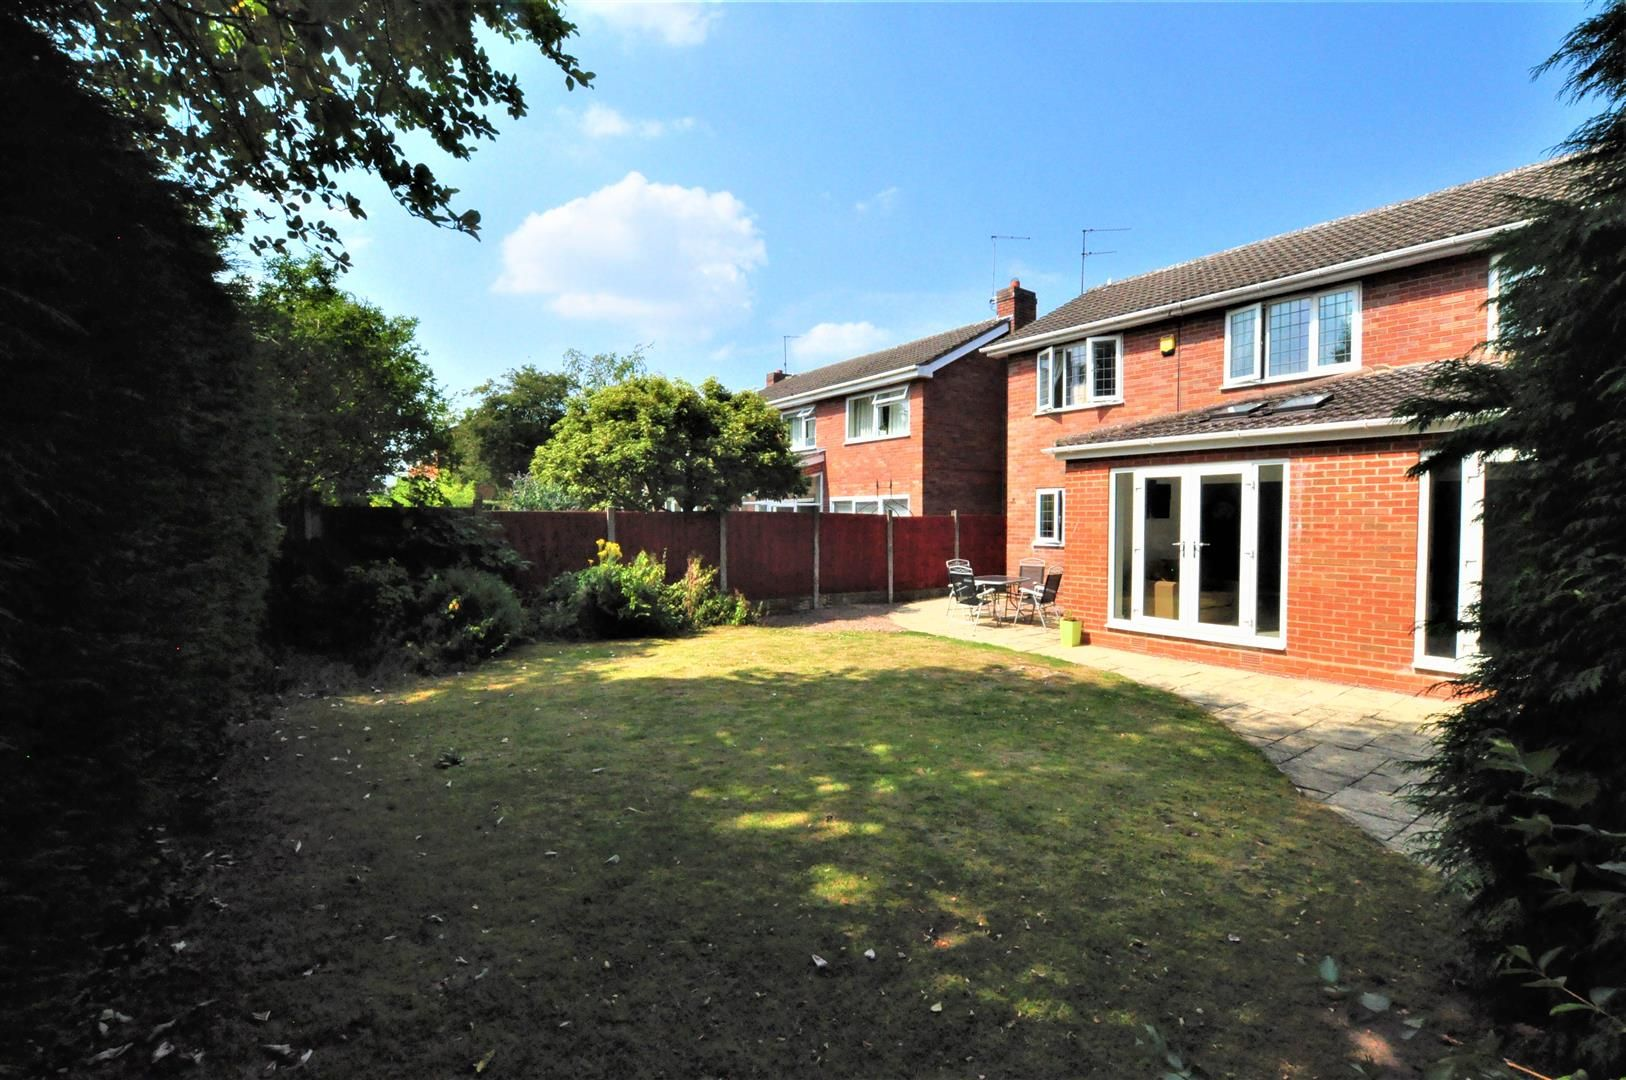 4 bed house for sale in Hagley 26